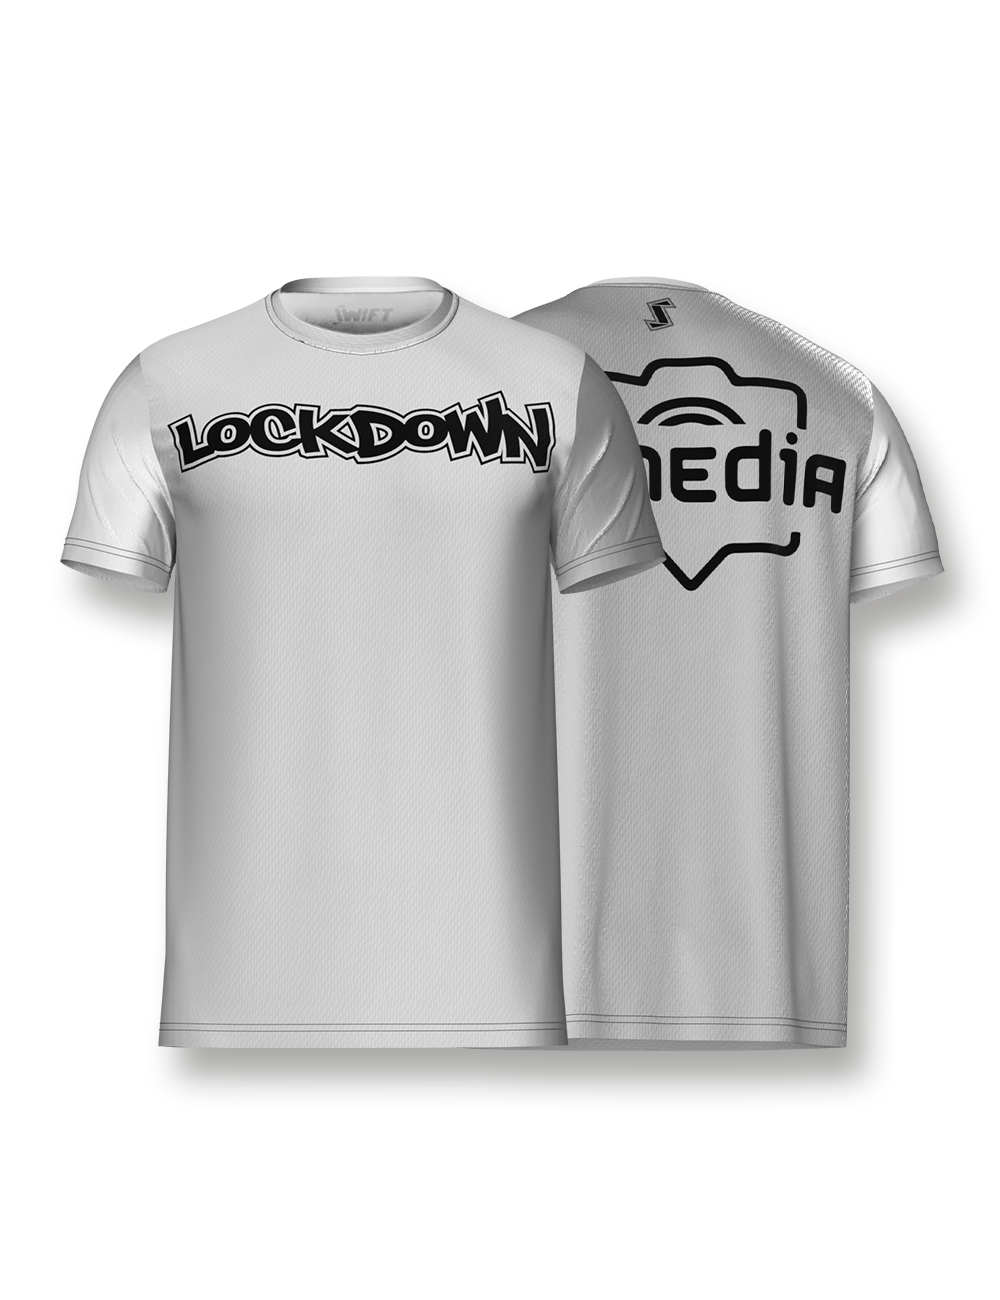 White & Black LockDown x AJ Media Tech Tee - LockDown Team Store